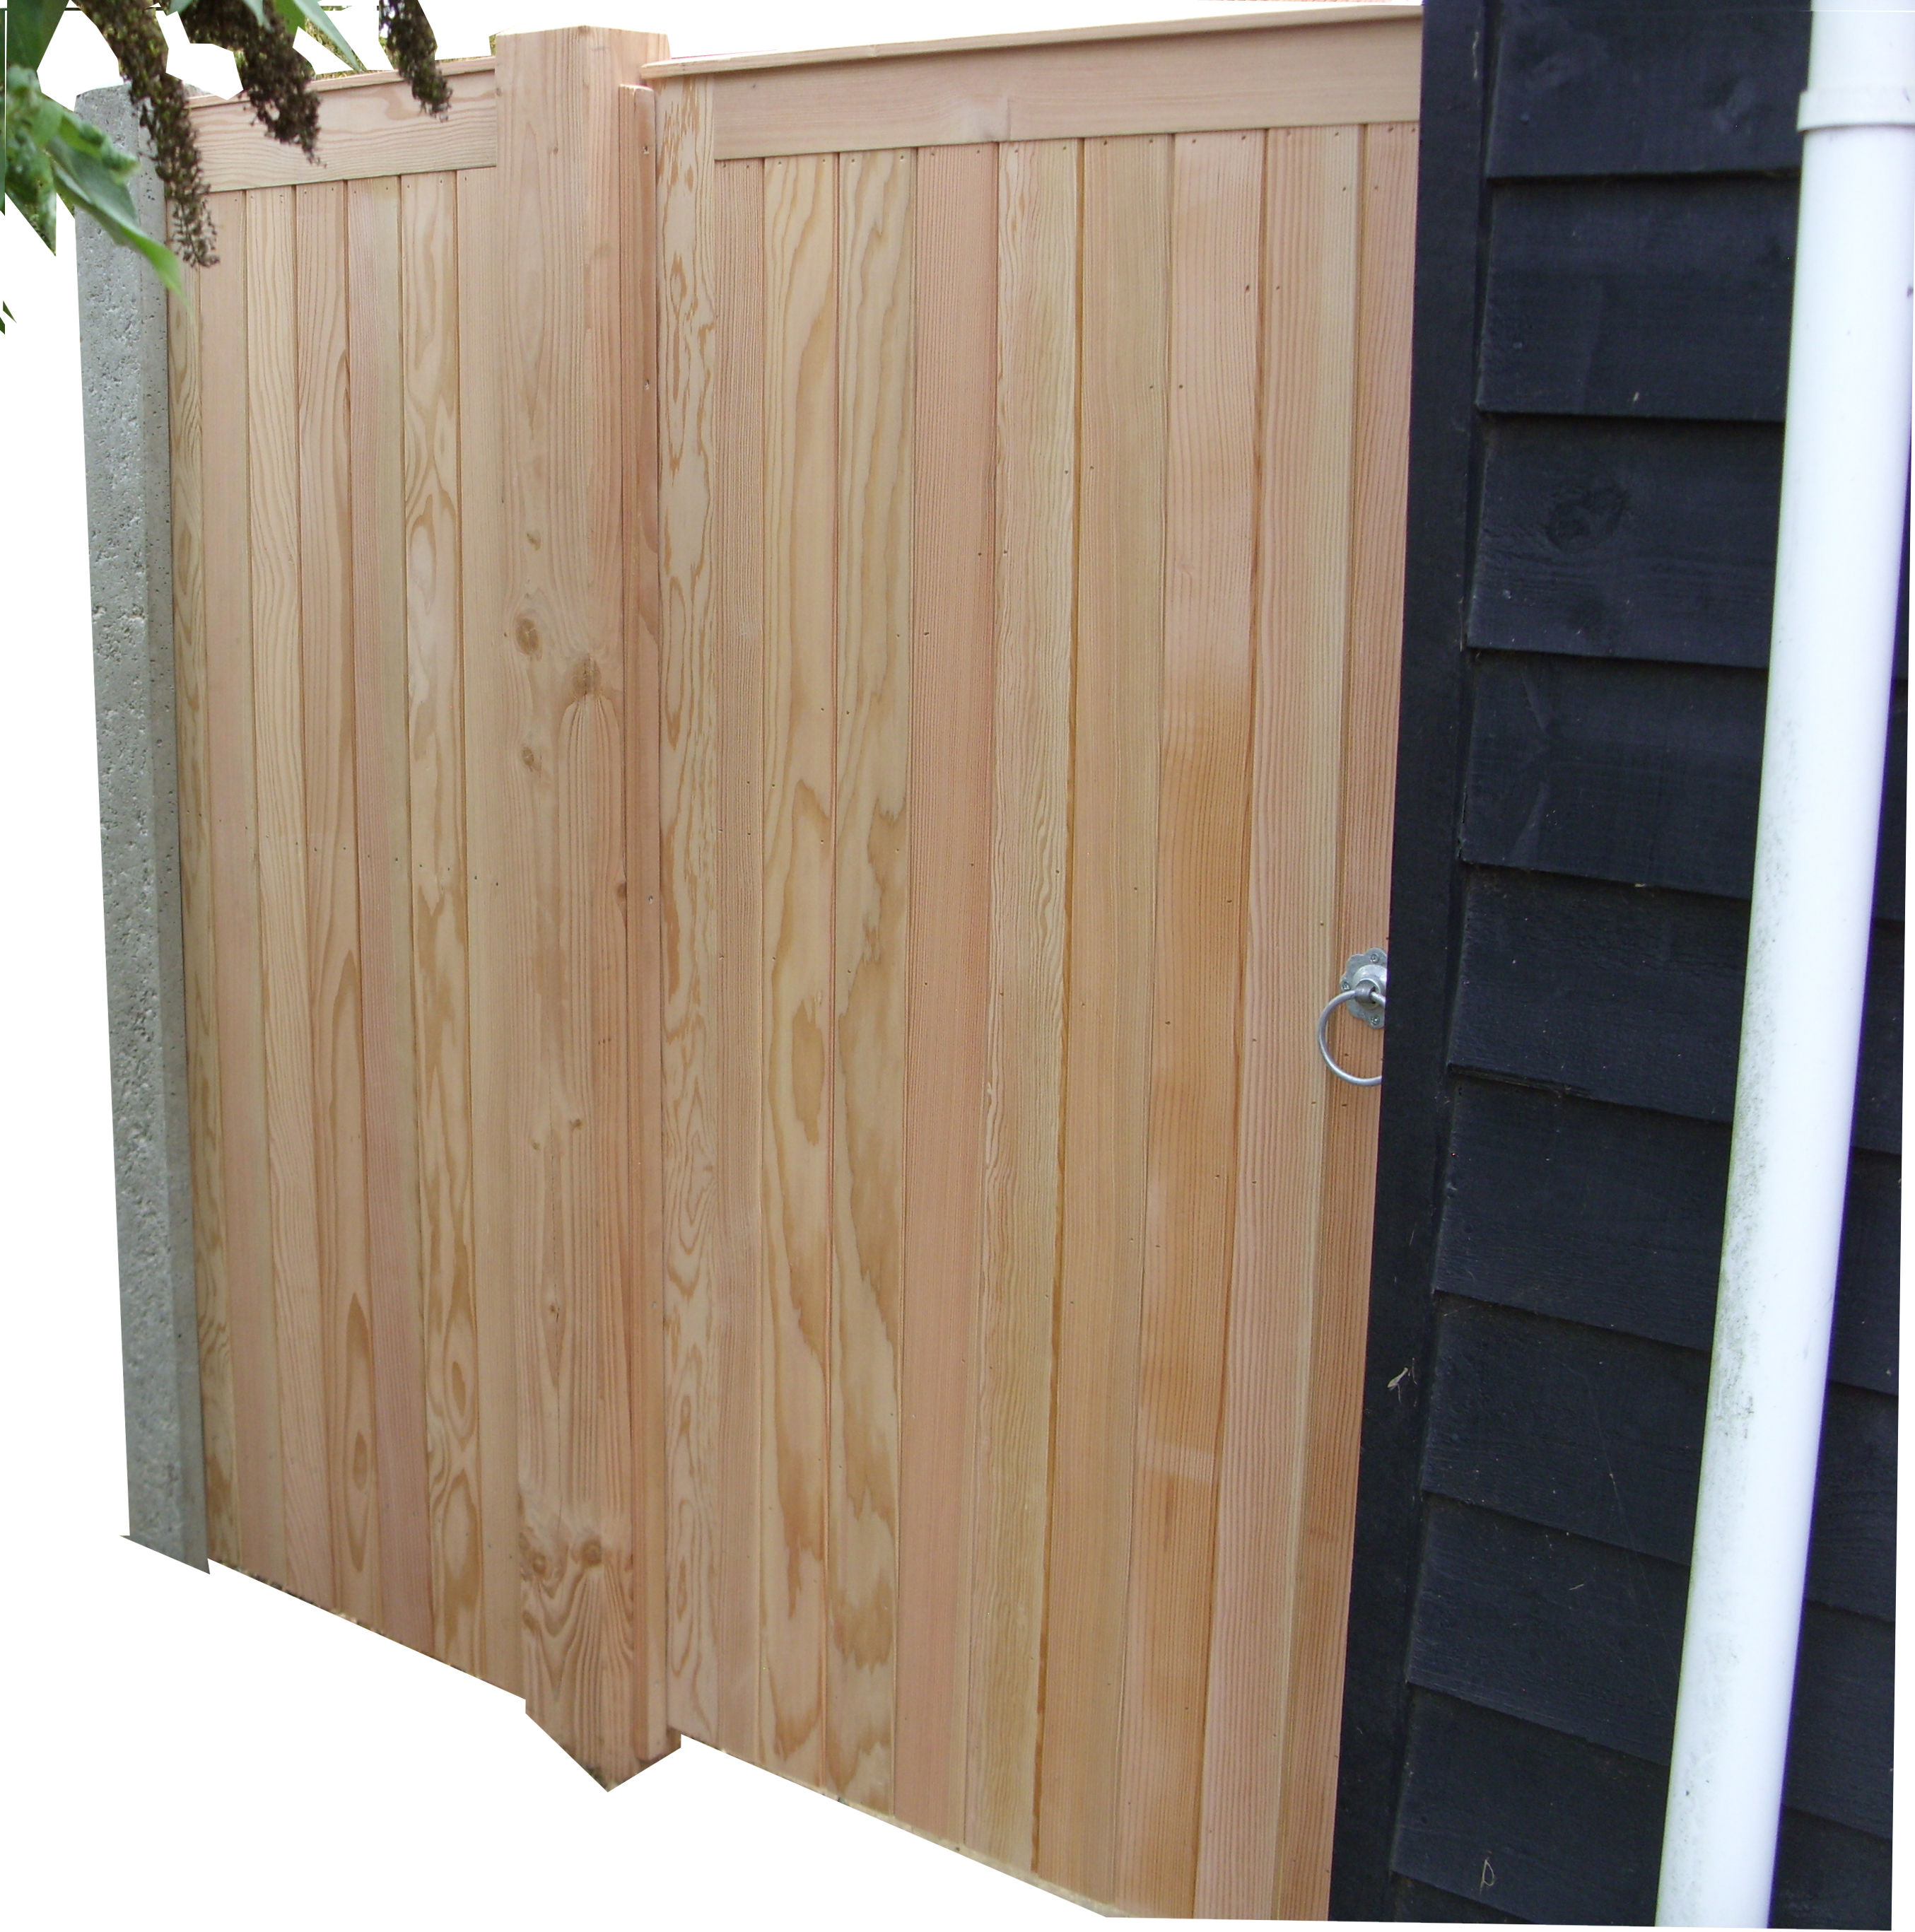 Glemham pedestrian gate with matching side panel in Douglas Fir.